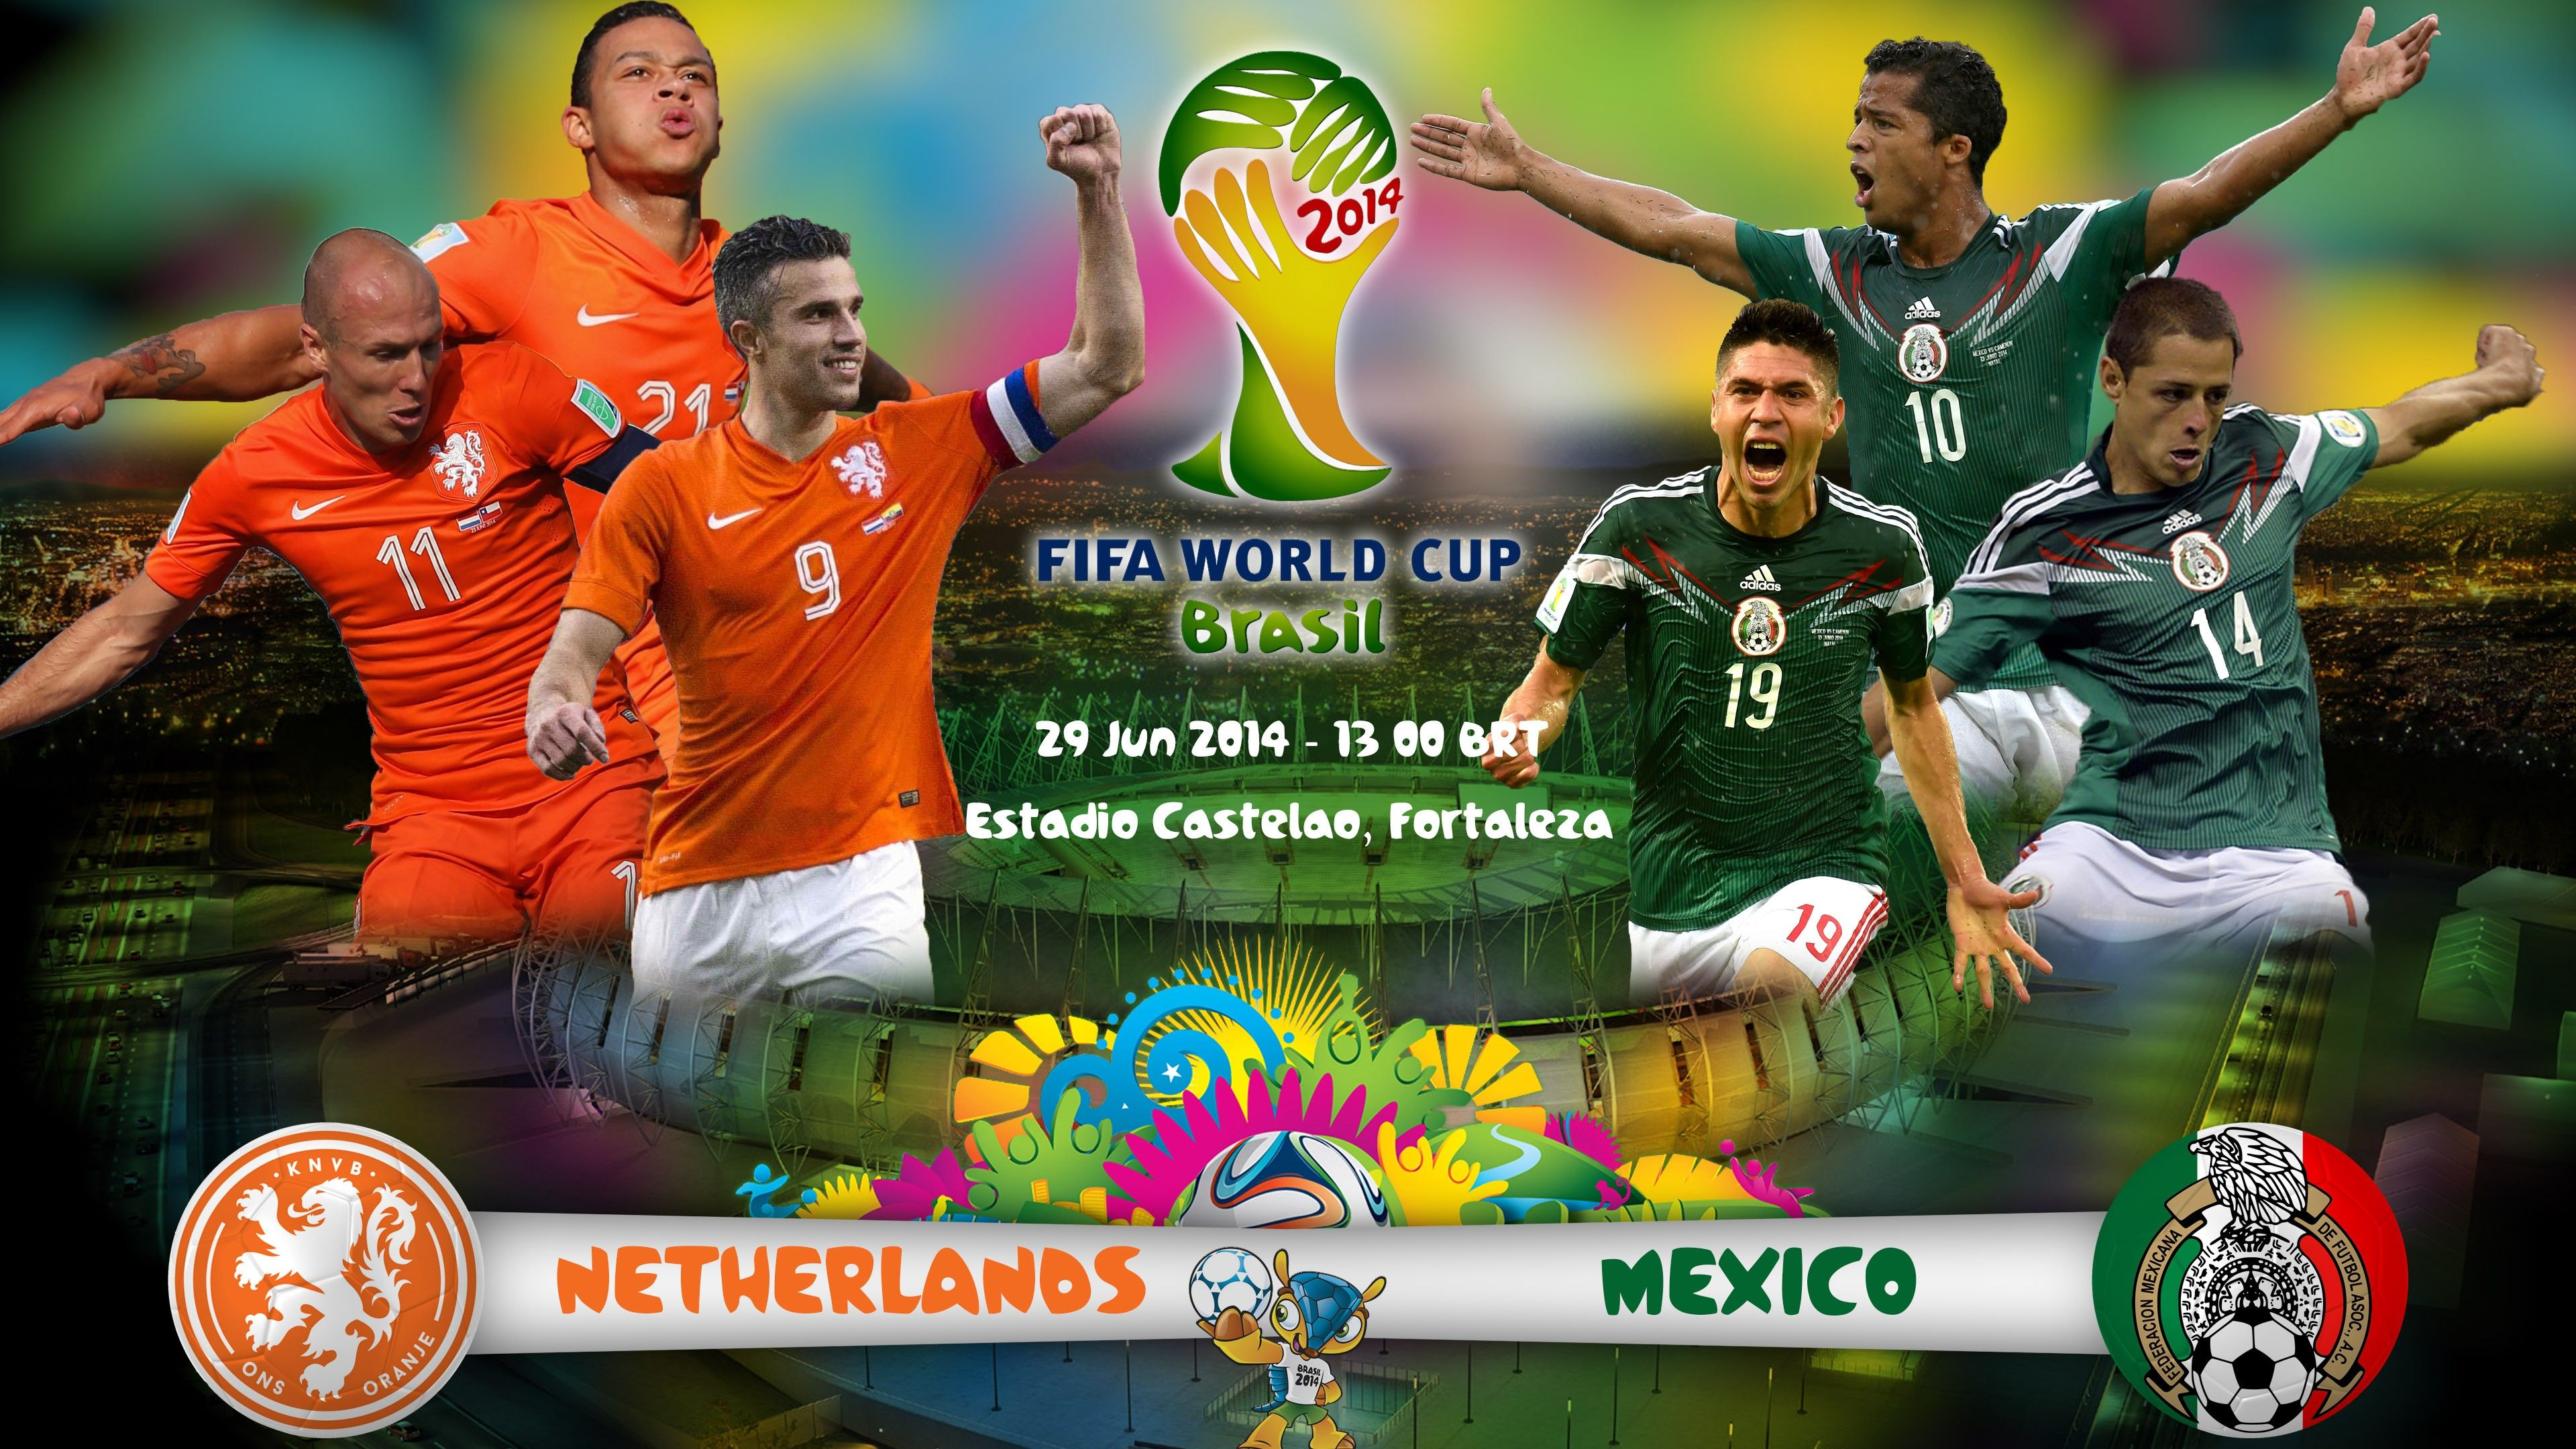 Netherlands Vs Mexico World Cup 2014 Round Of 16 Mexico World Cup World Cup 2014 World Cup